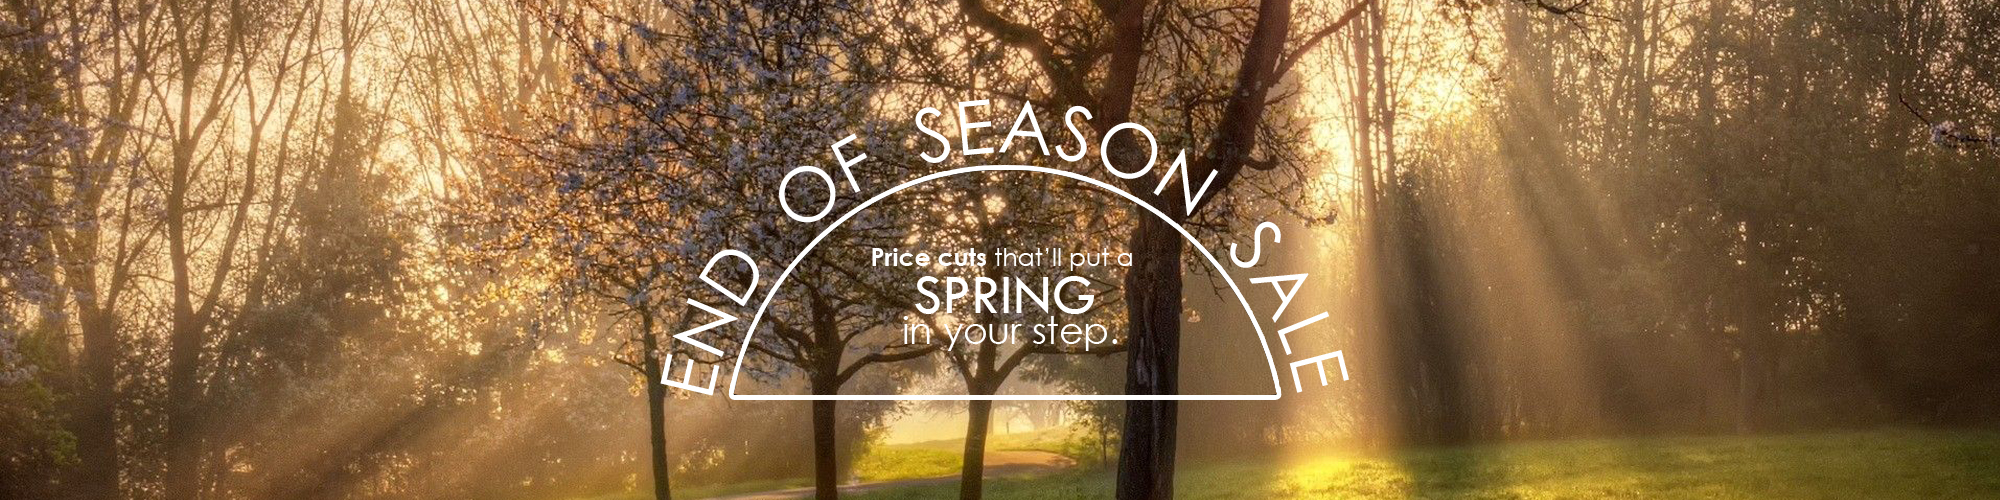 End Of Season Deals To Put A Spring In Your Step